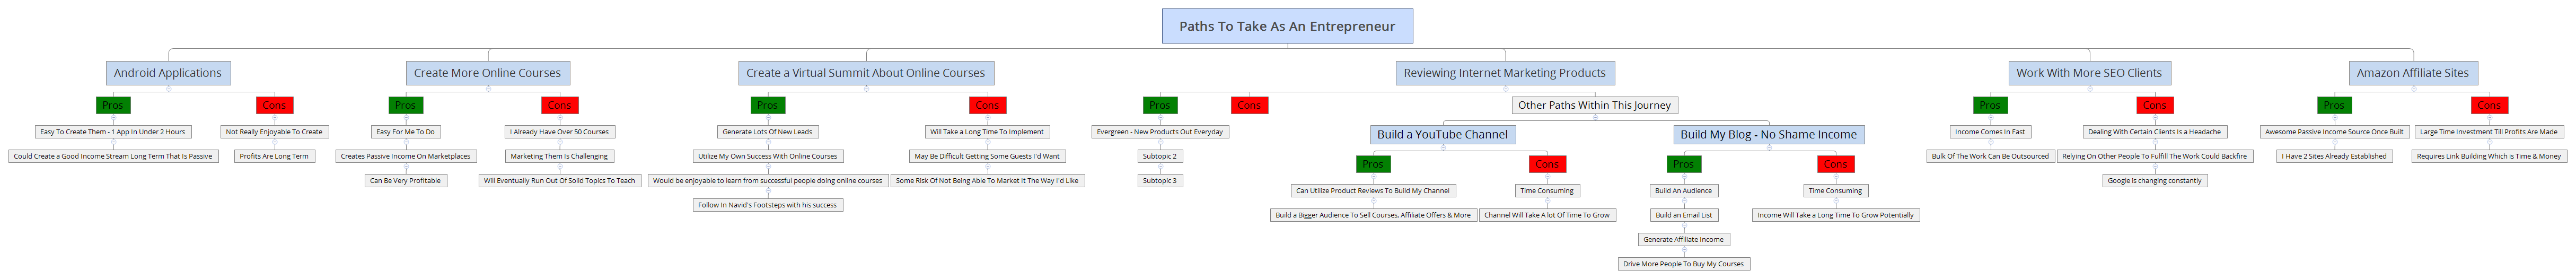 Paths To Take As An Entrepreneur